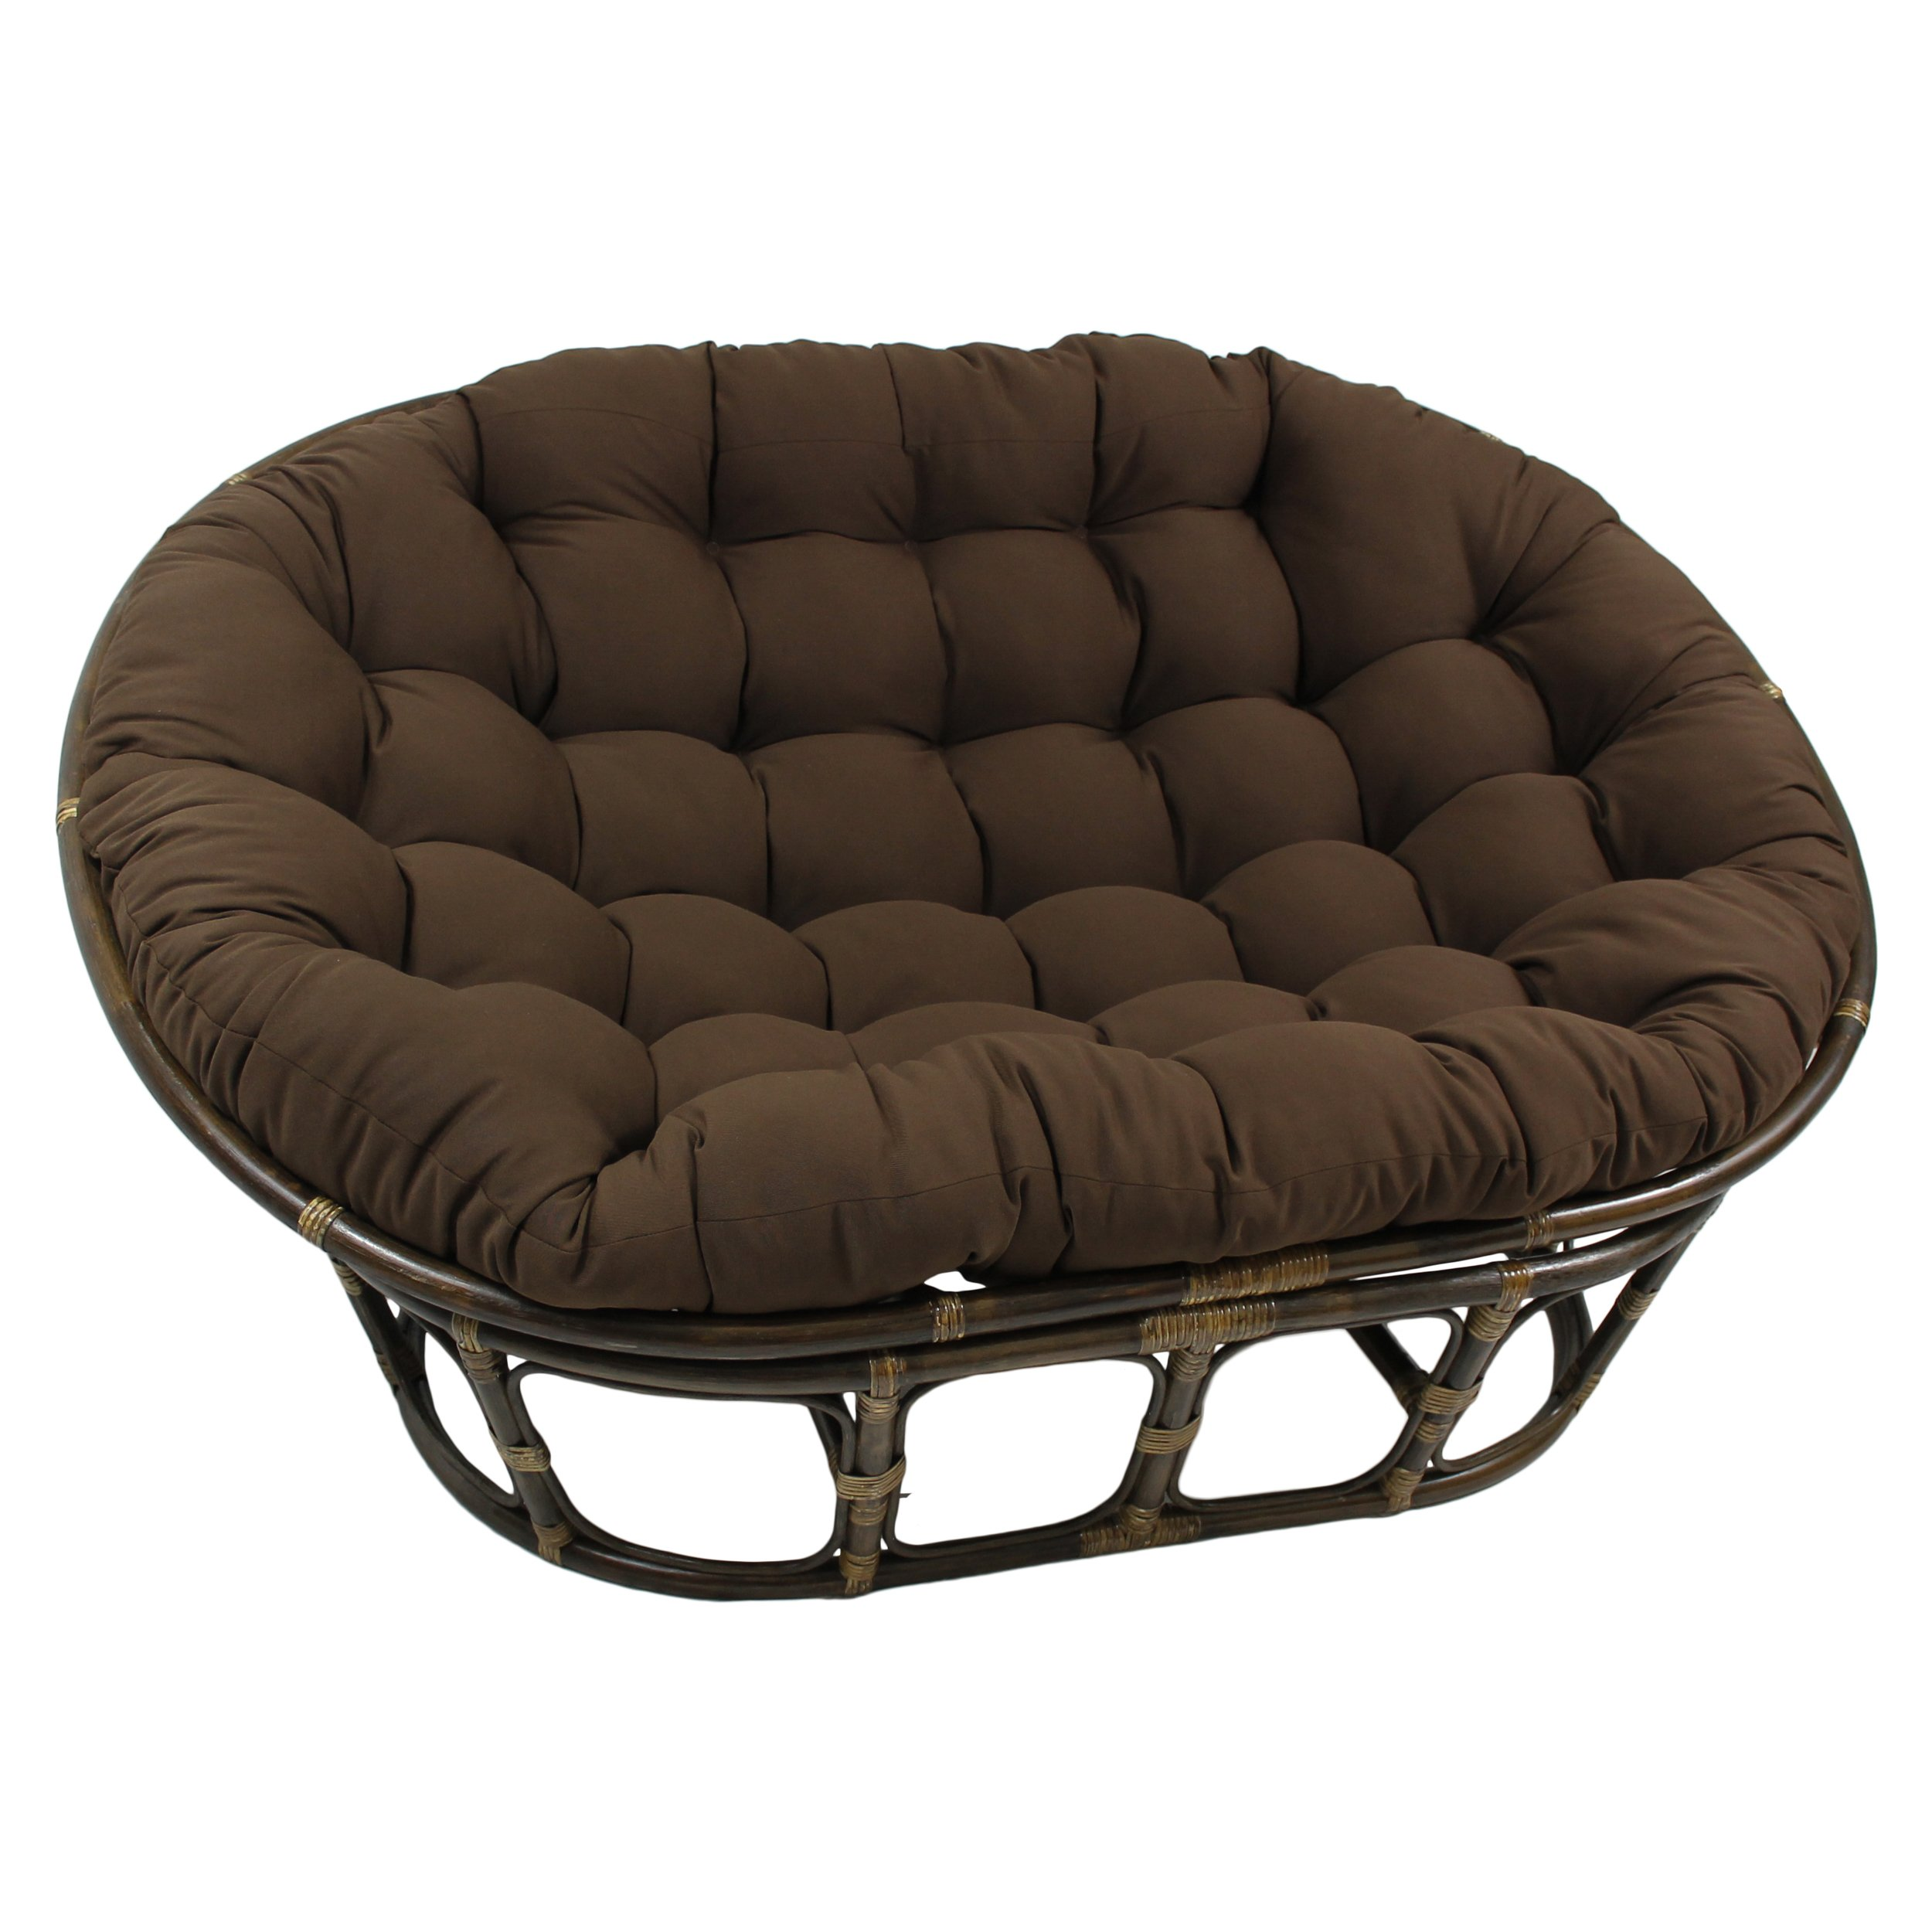 Blazing Needles Solid Twill Double Papasan Chair Cushion, 48'' x 6'' x 65'', Chocolate by Blazing Needles